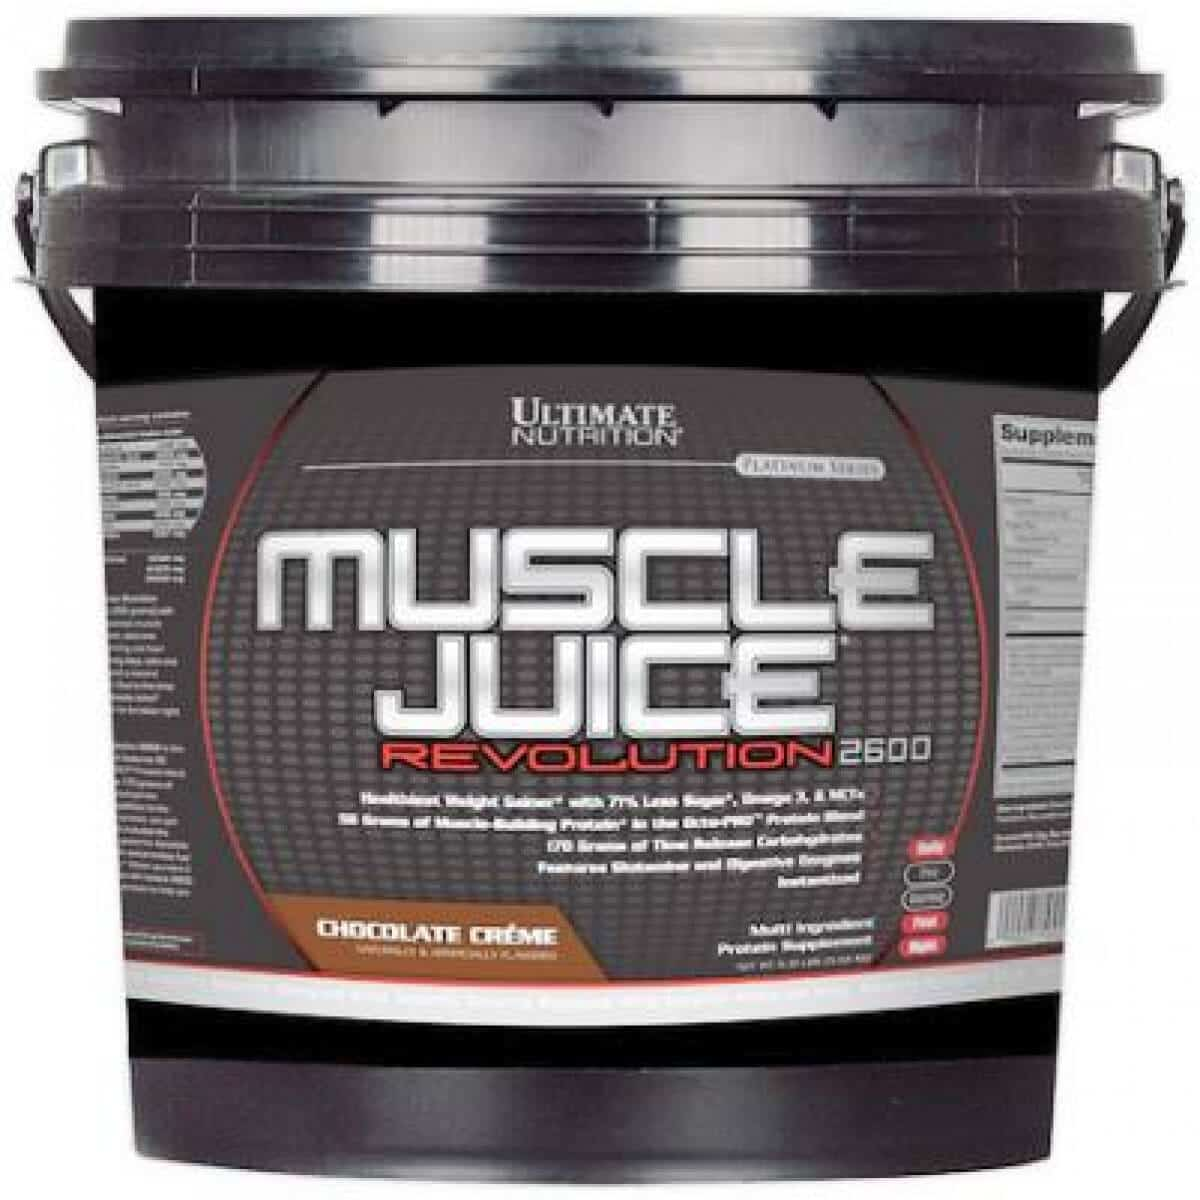 Ultimate Nutrition Muscle Juice Review – Nutrition Ftempo